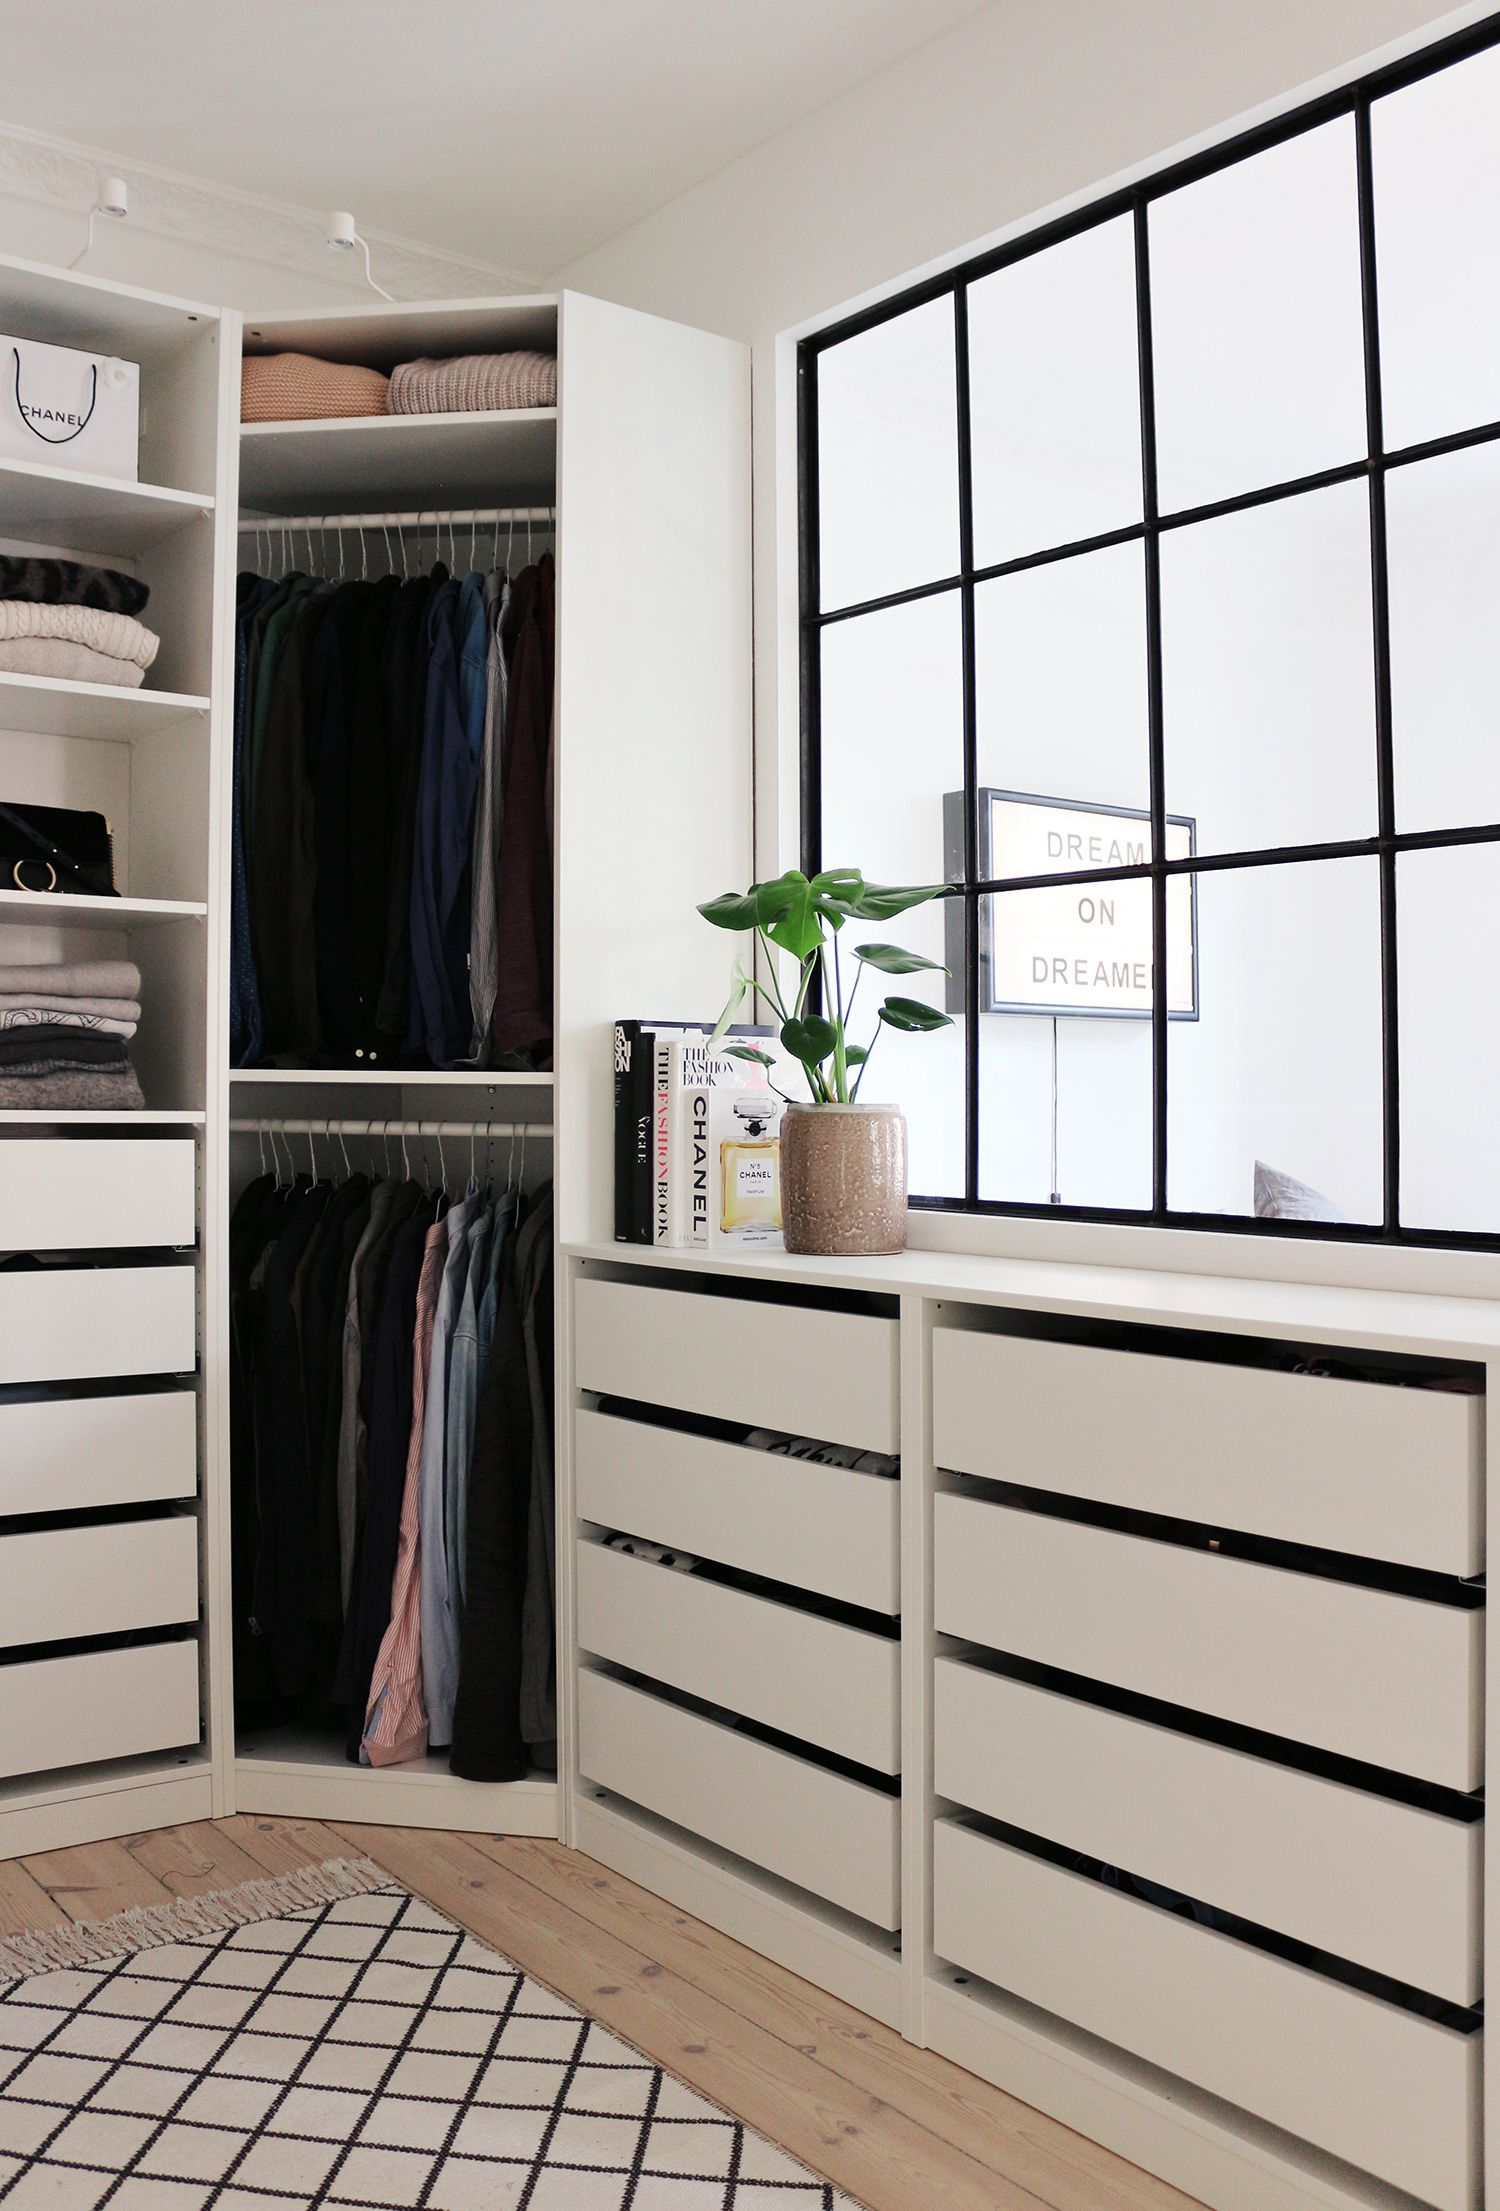 Schrank Ankleidezimmer Walk In Closet Ikea Pax Inspiration Dressing Room